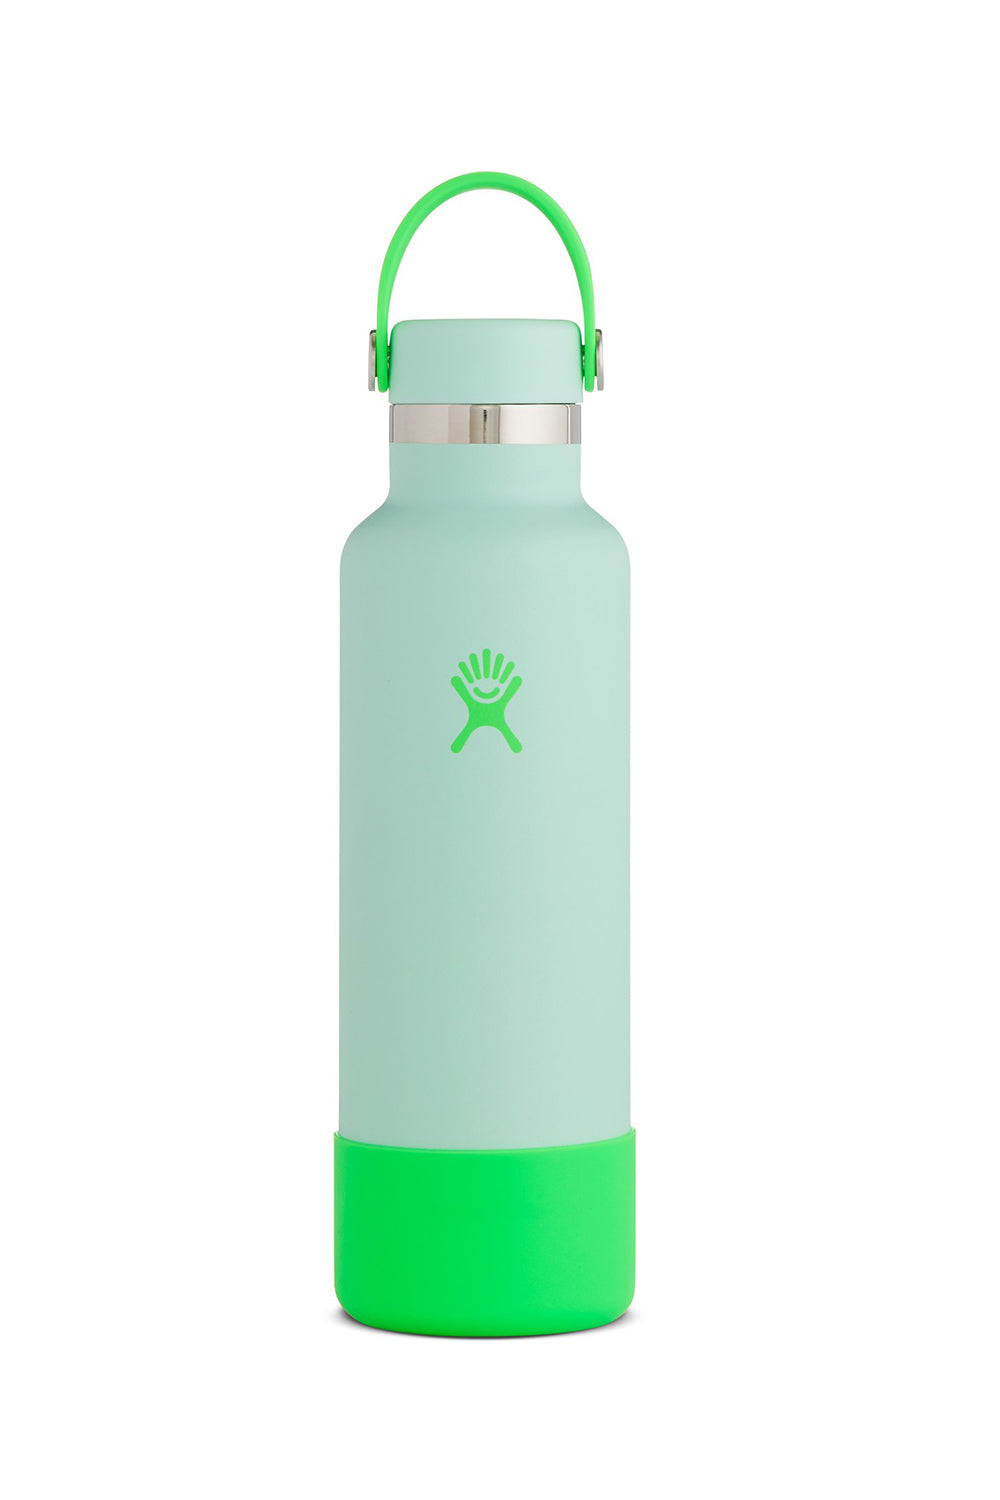 Hydro Flask Prism Pop 21oz (621ml) Standard Mouth Drink Bottle